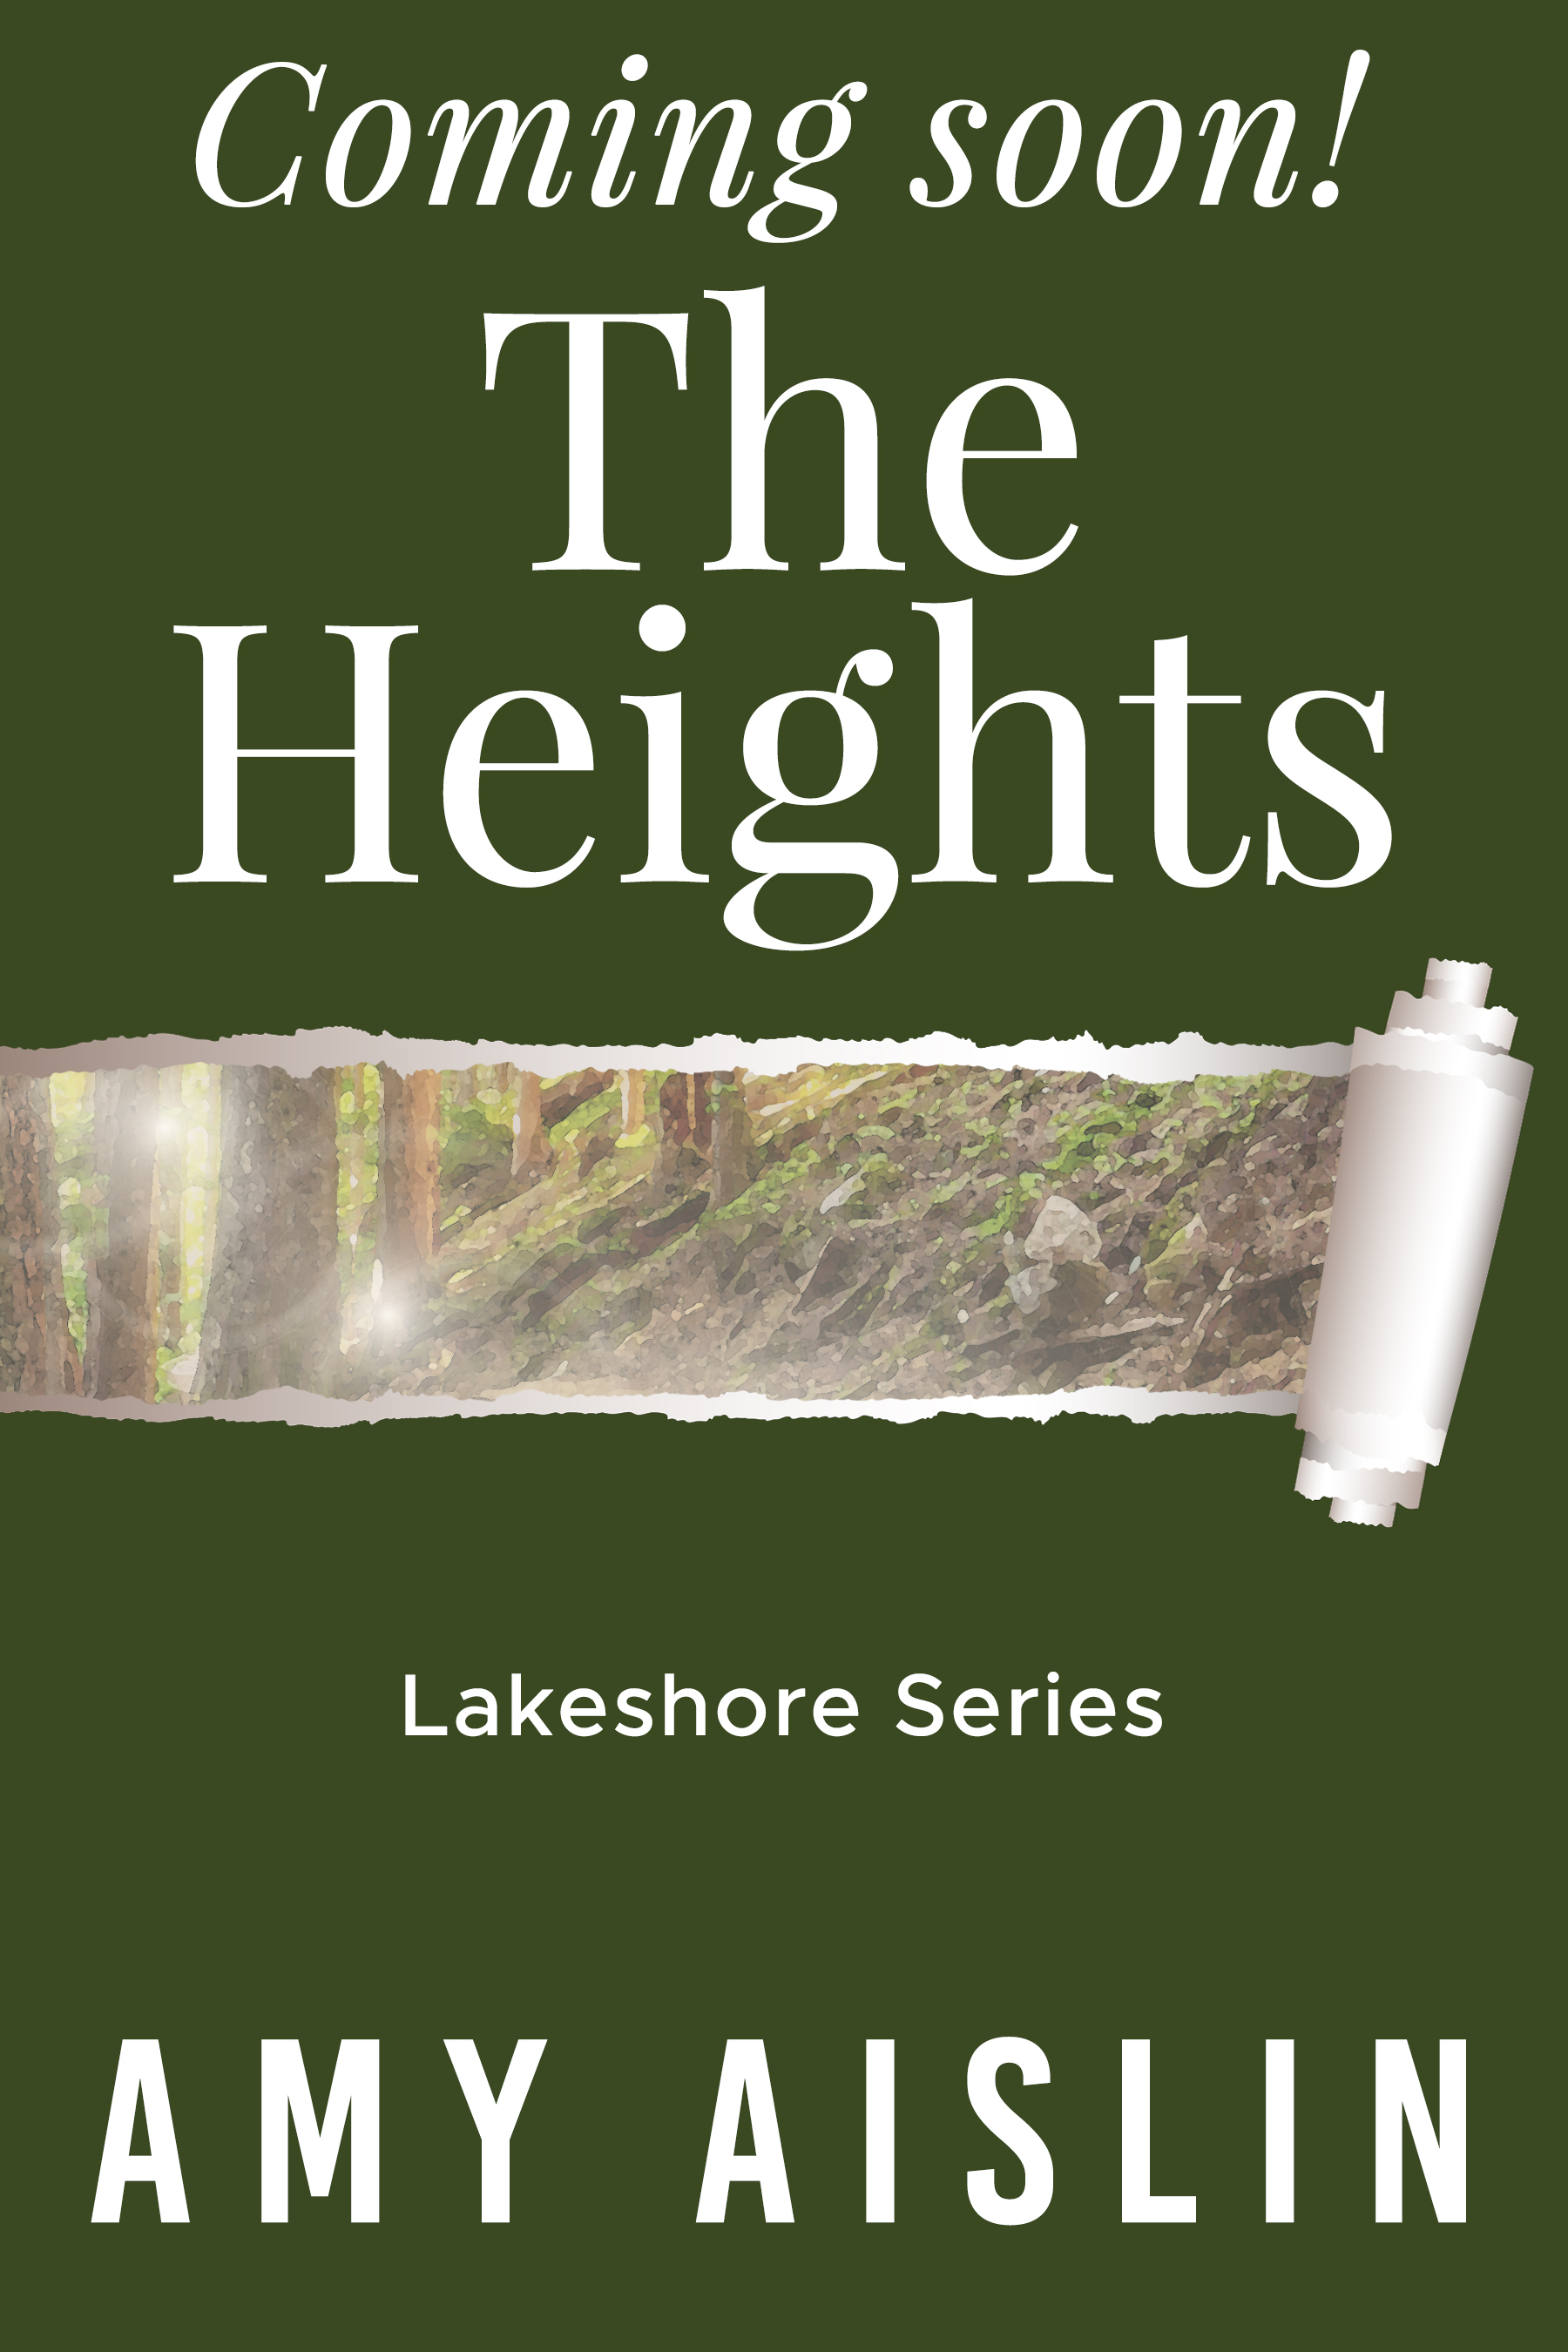 The Heights Coming Soon